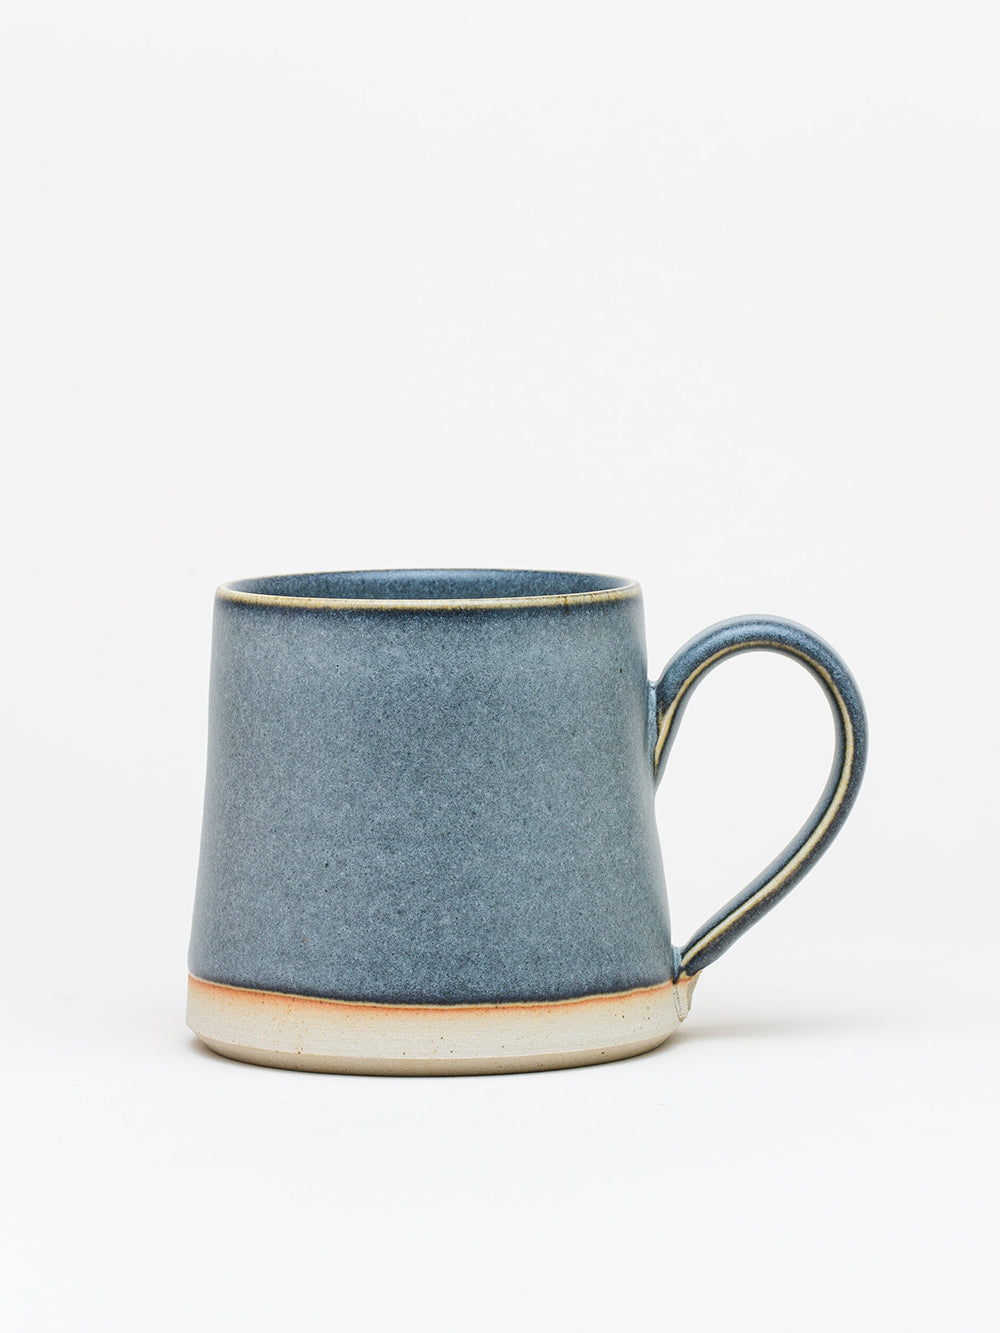 wrf large mug in ash